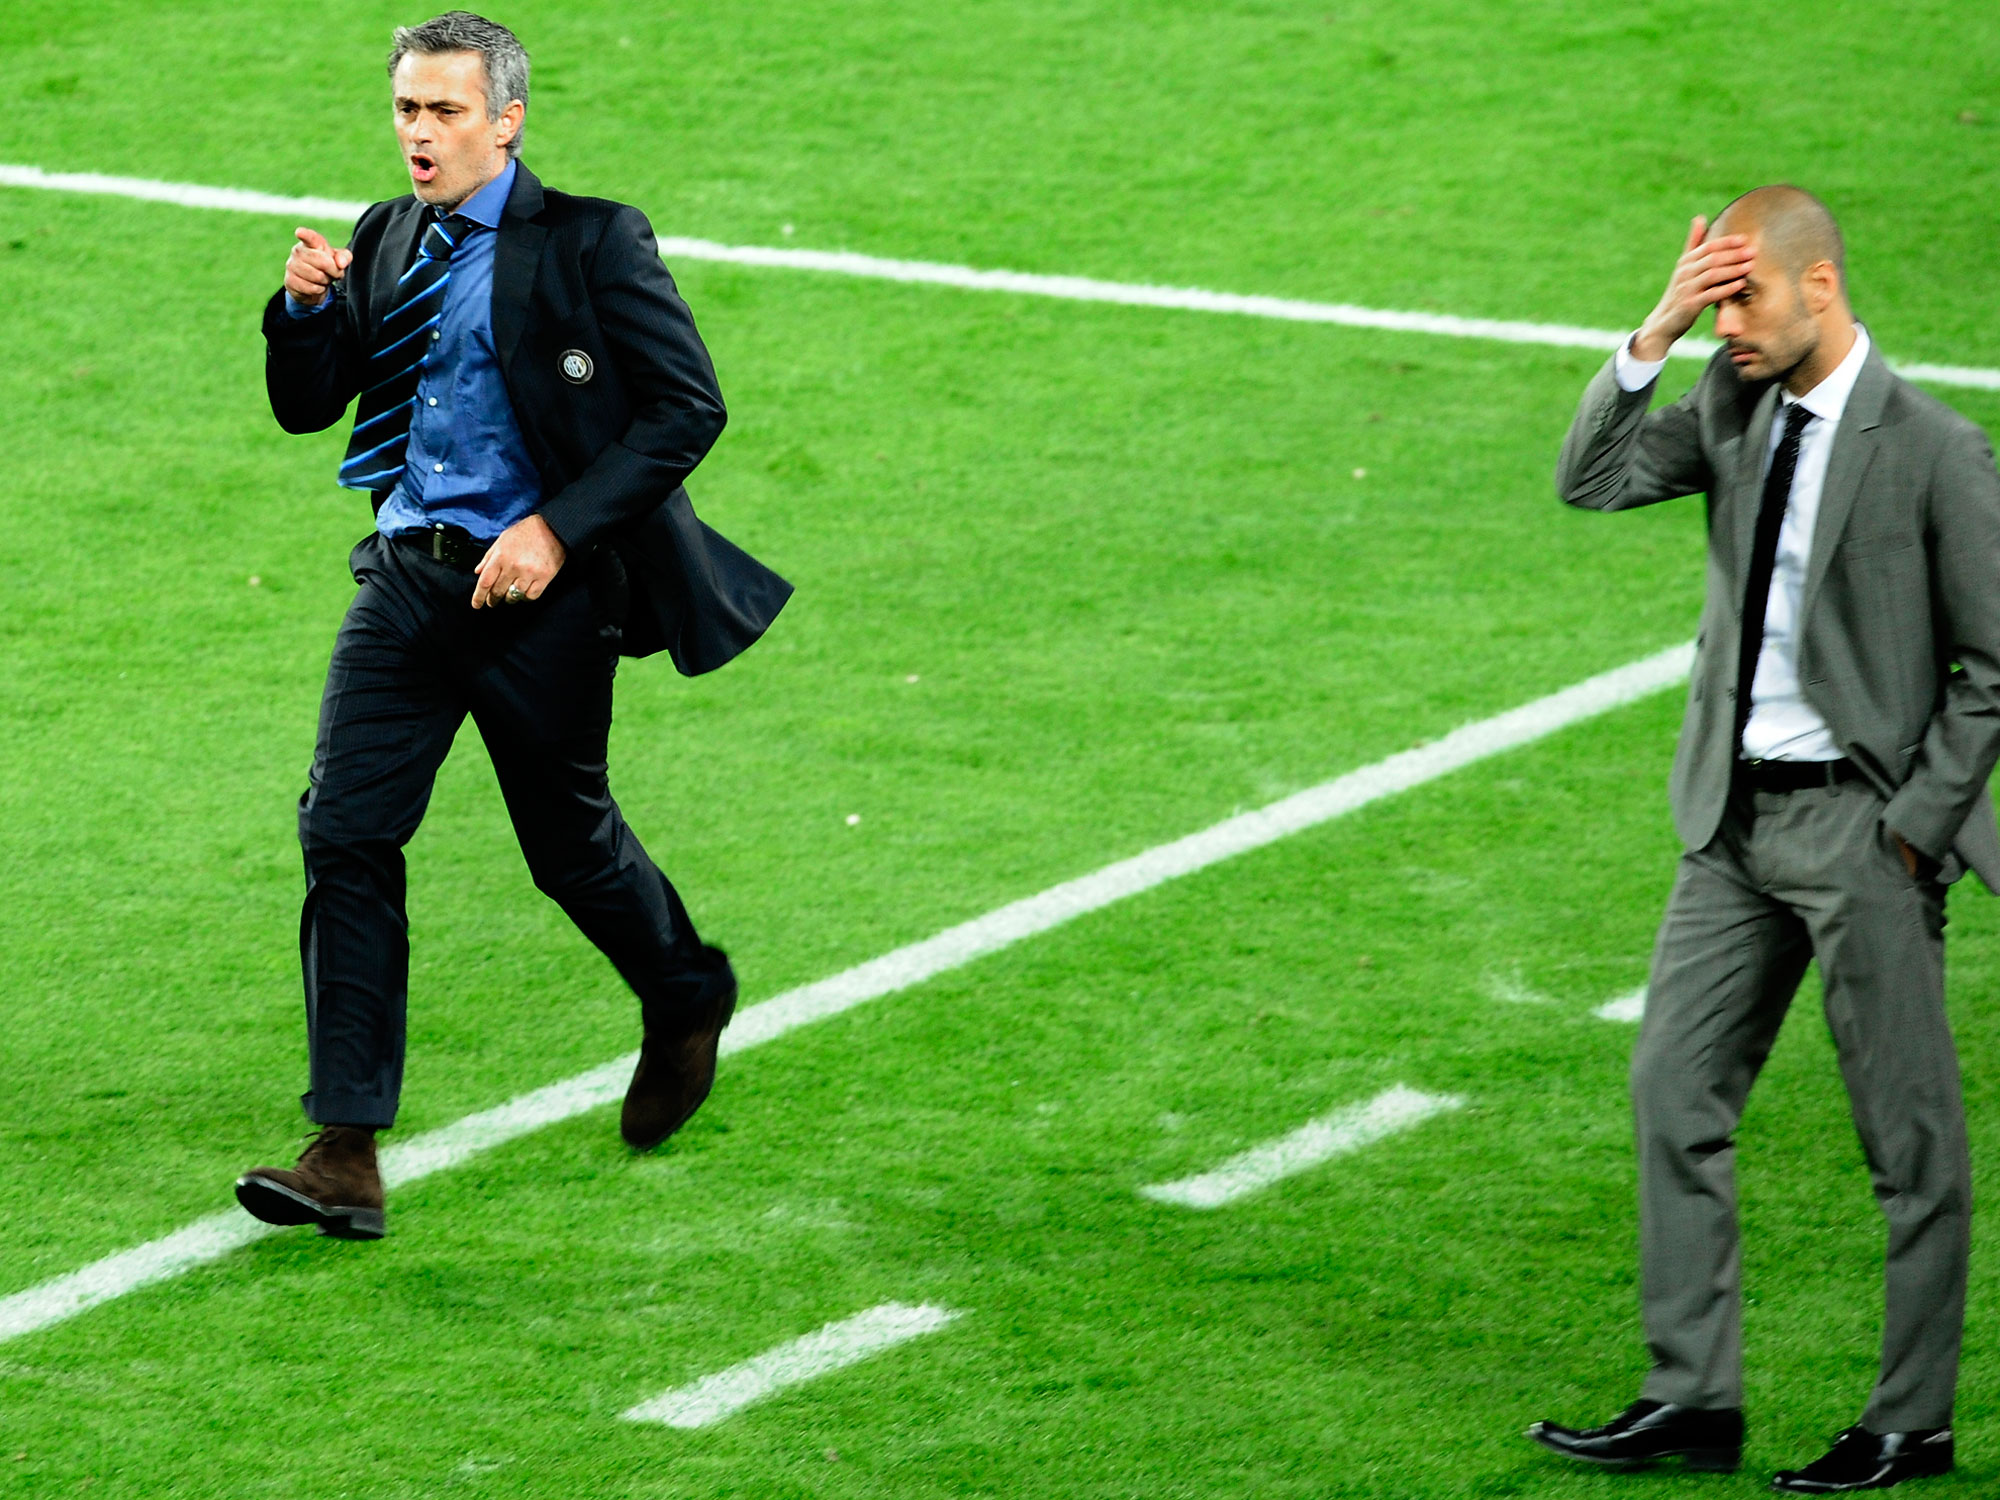 Jose Mourinho and Pep Guardiola in 2010